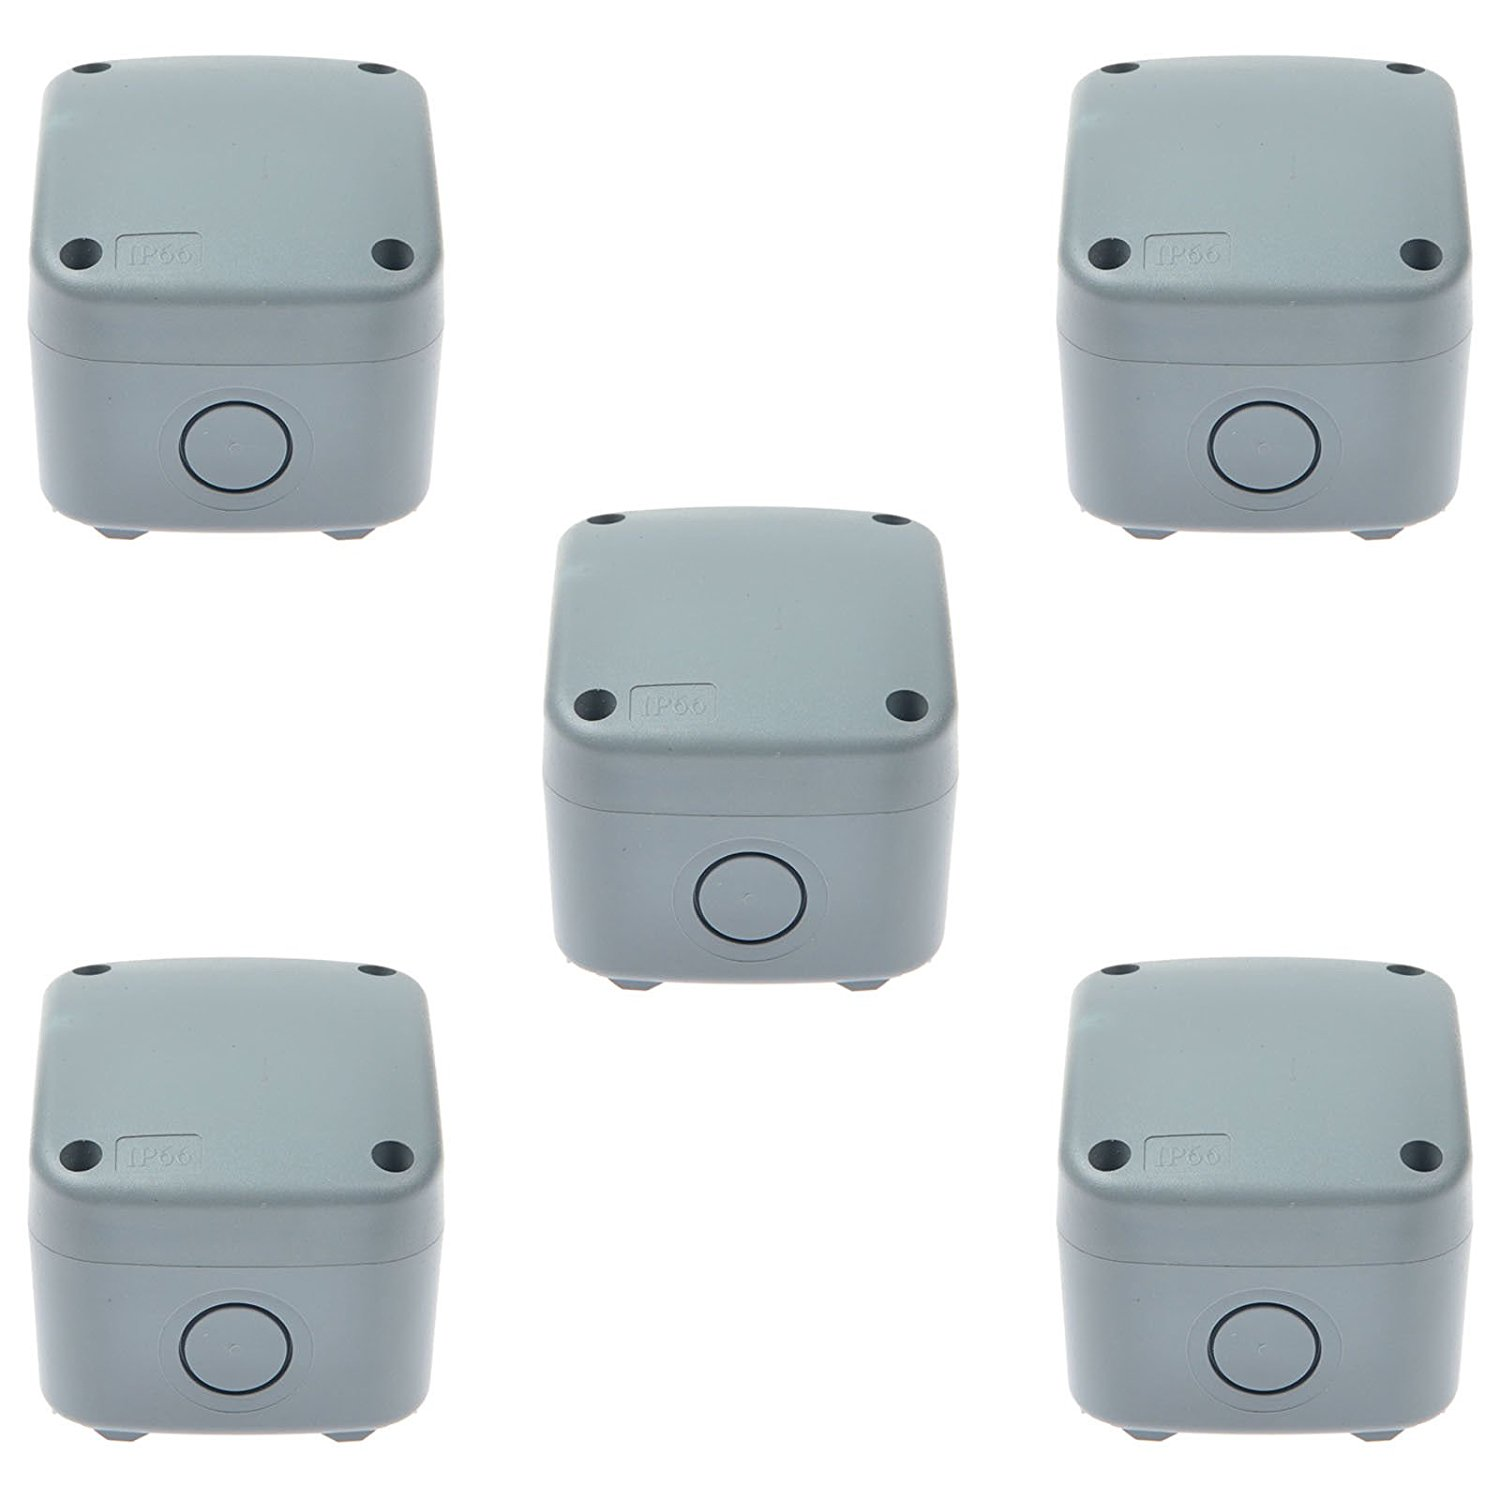 GREENCYCLE 5 Pack IP66 Rated Plastic Weatherproof Junction Box Fit for Outdoor Use, 867462mm